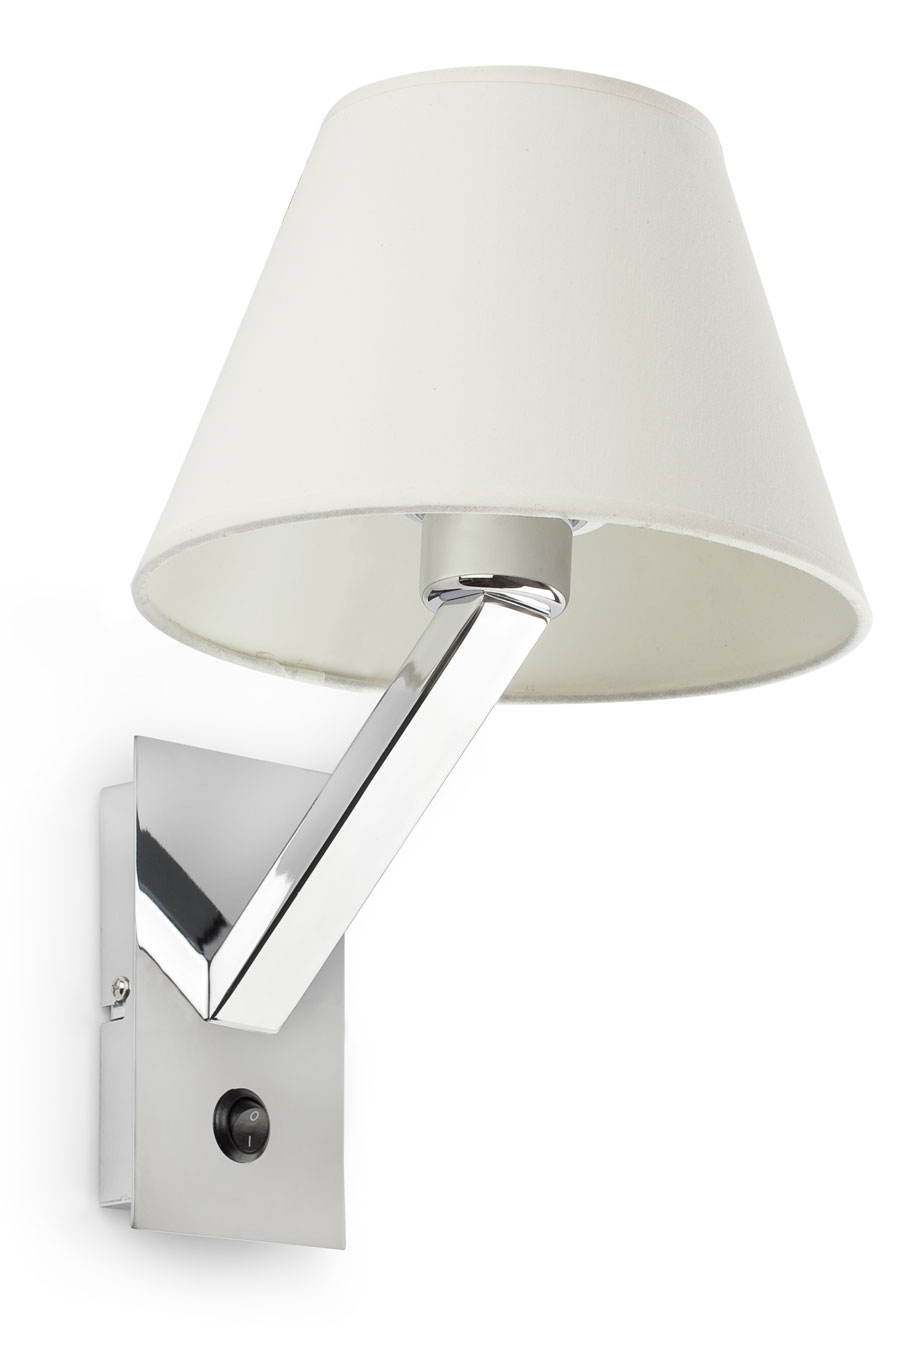 Moma 1 chrome and white fabric designer wall light. Faro.